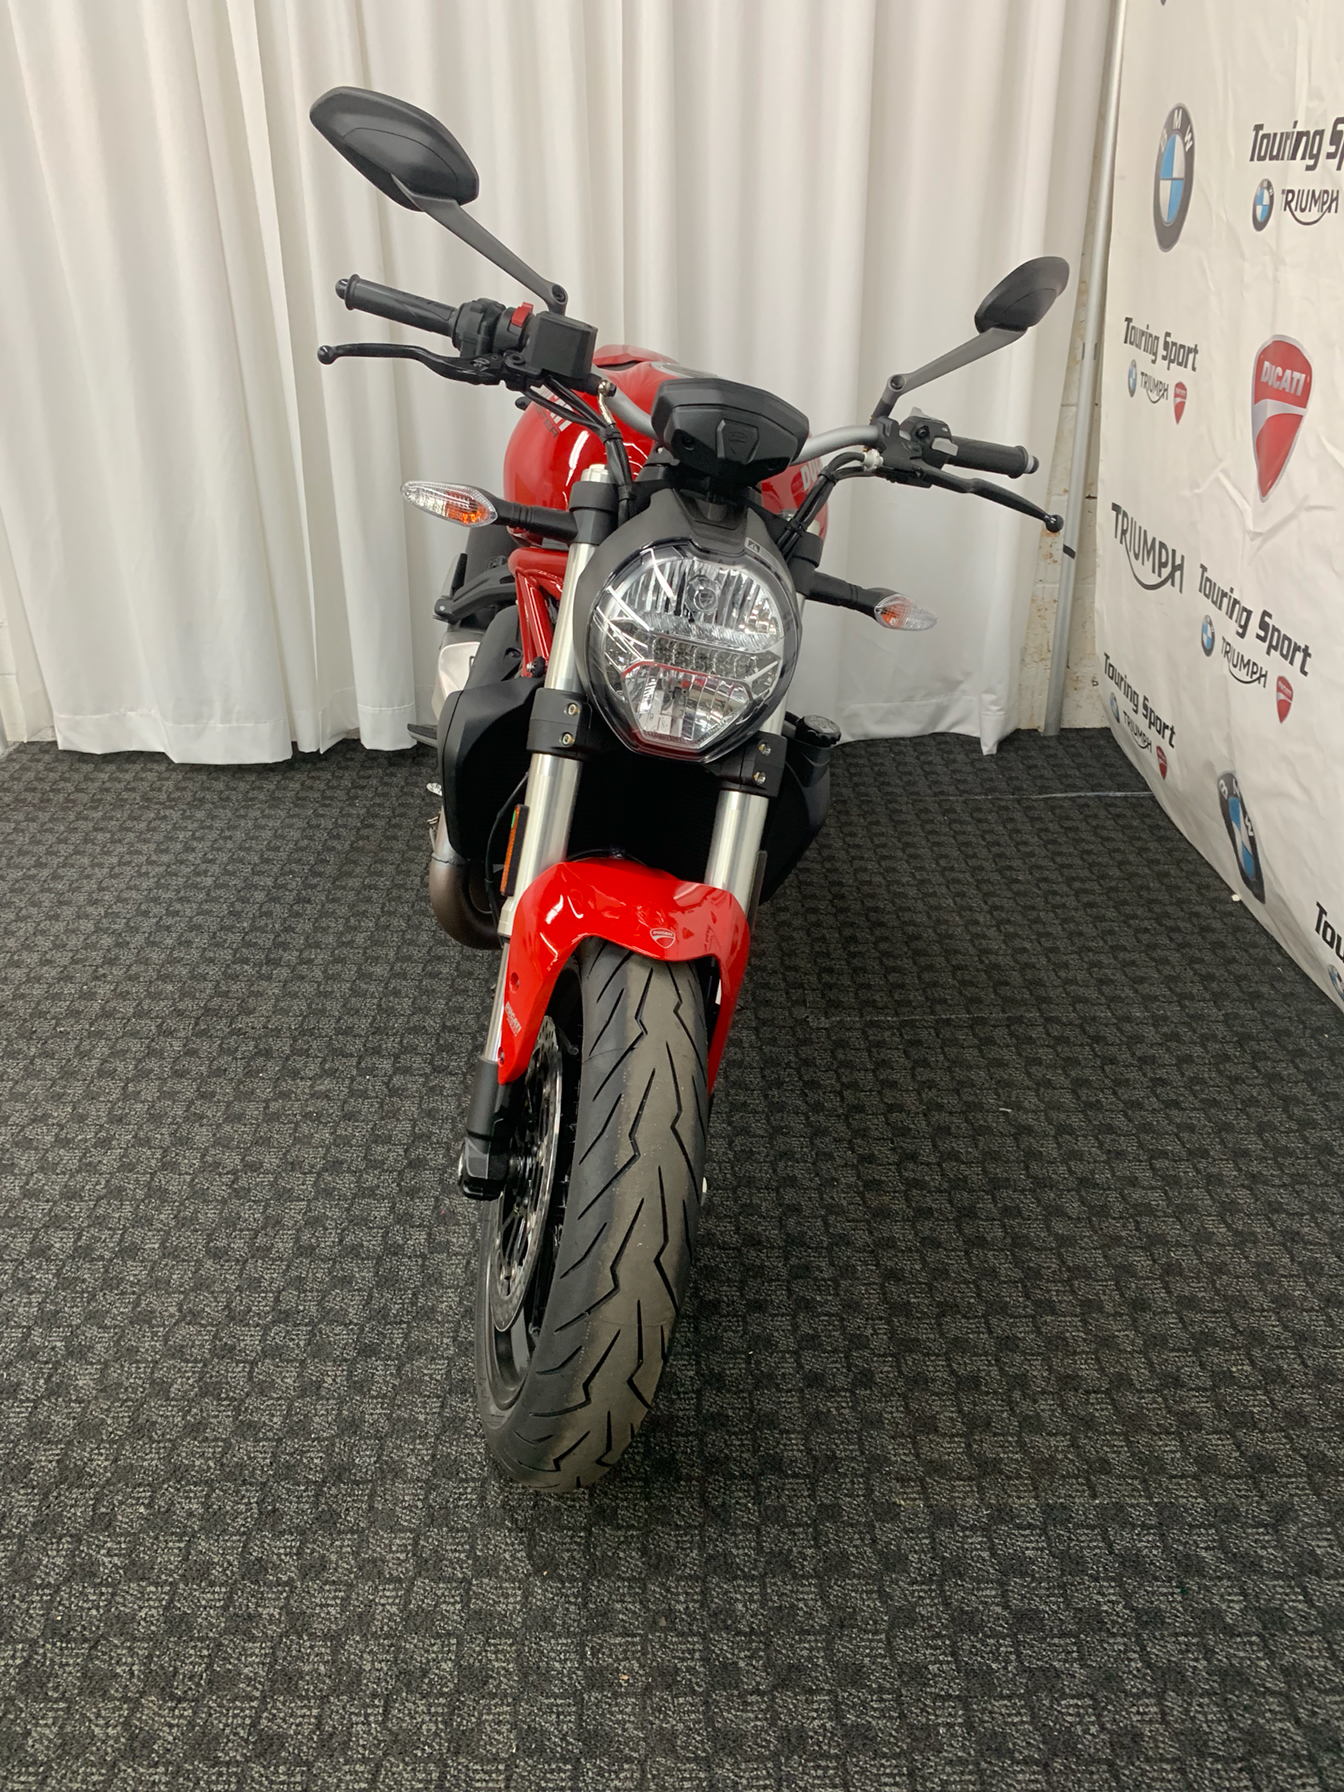 2019 Ducati Monster 821 in Greenville, South Carolina - Photo 3